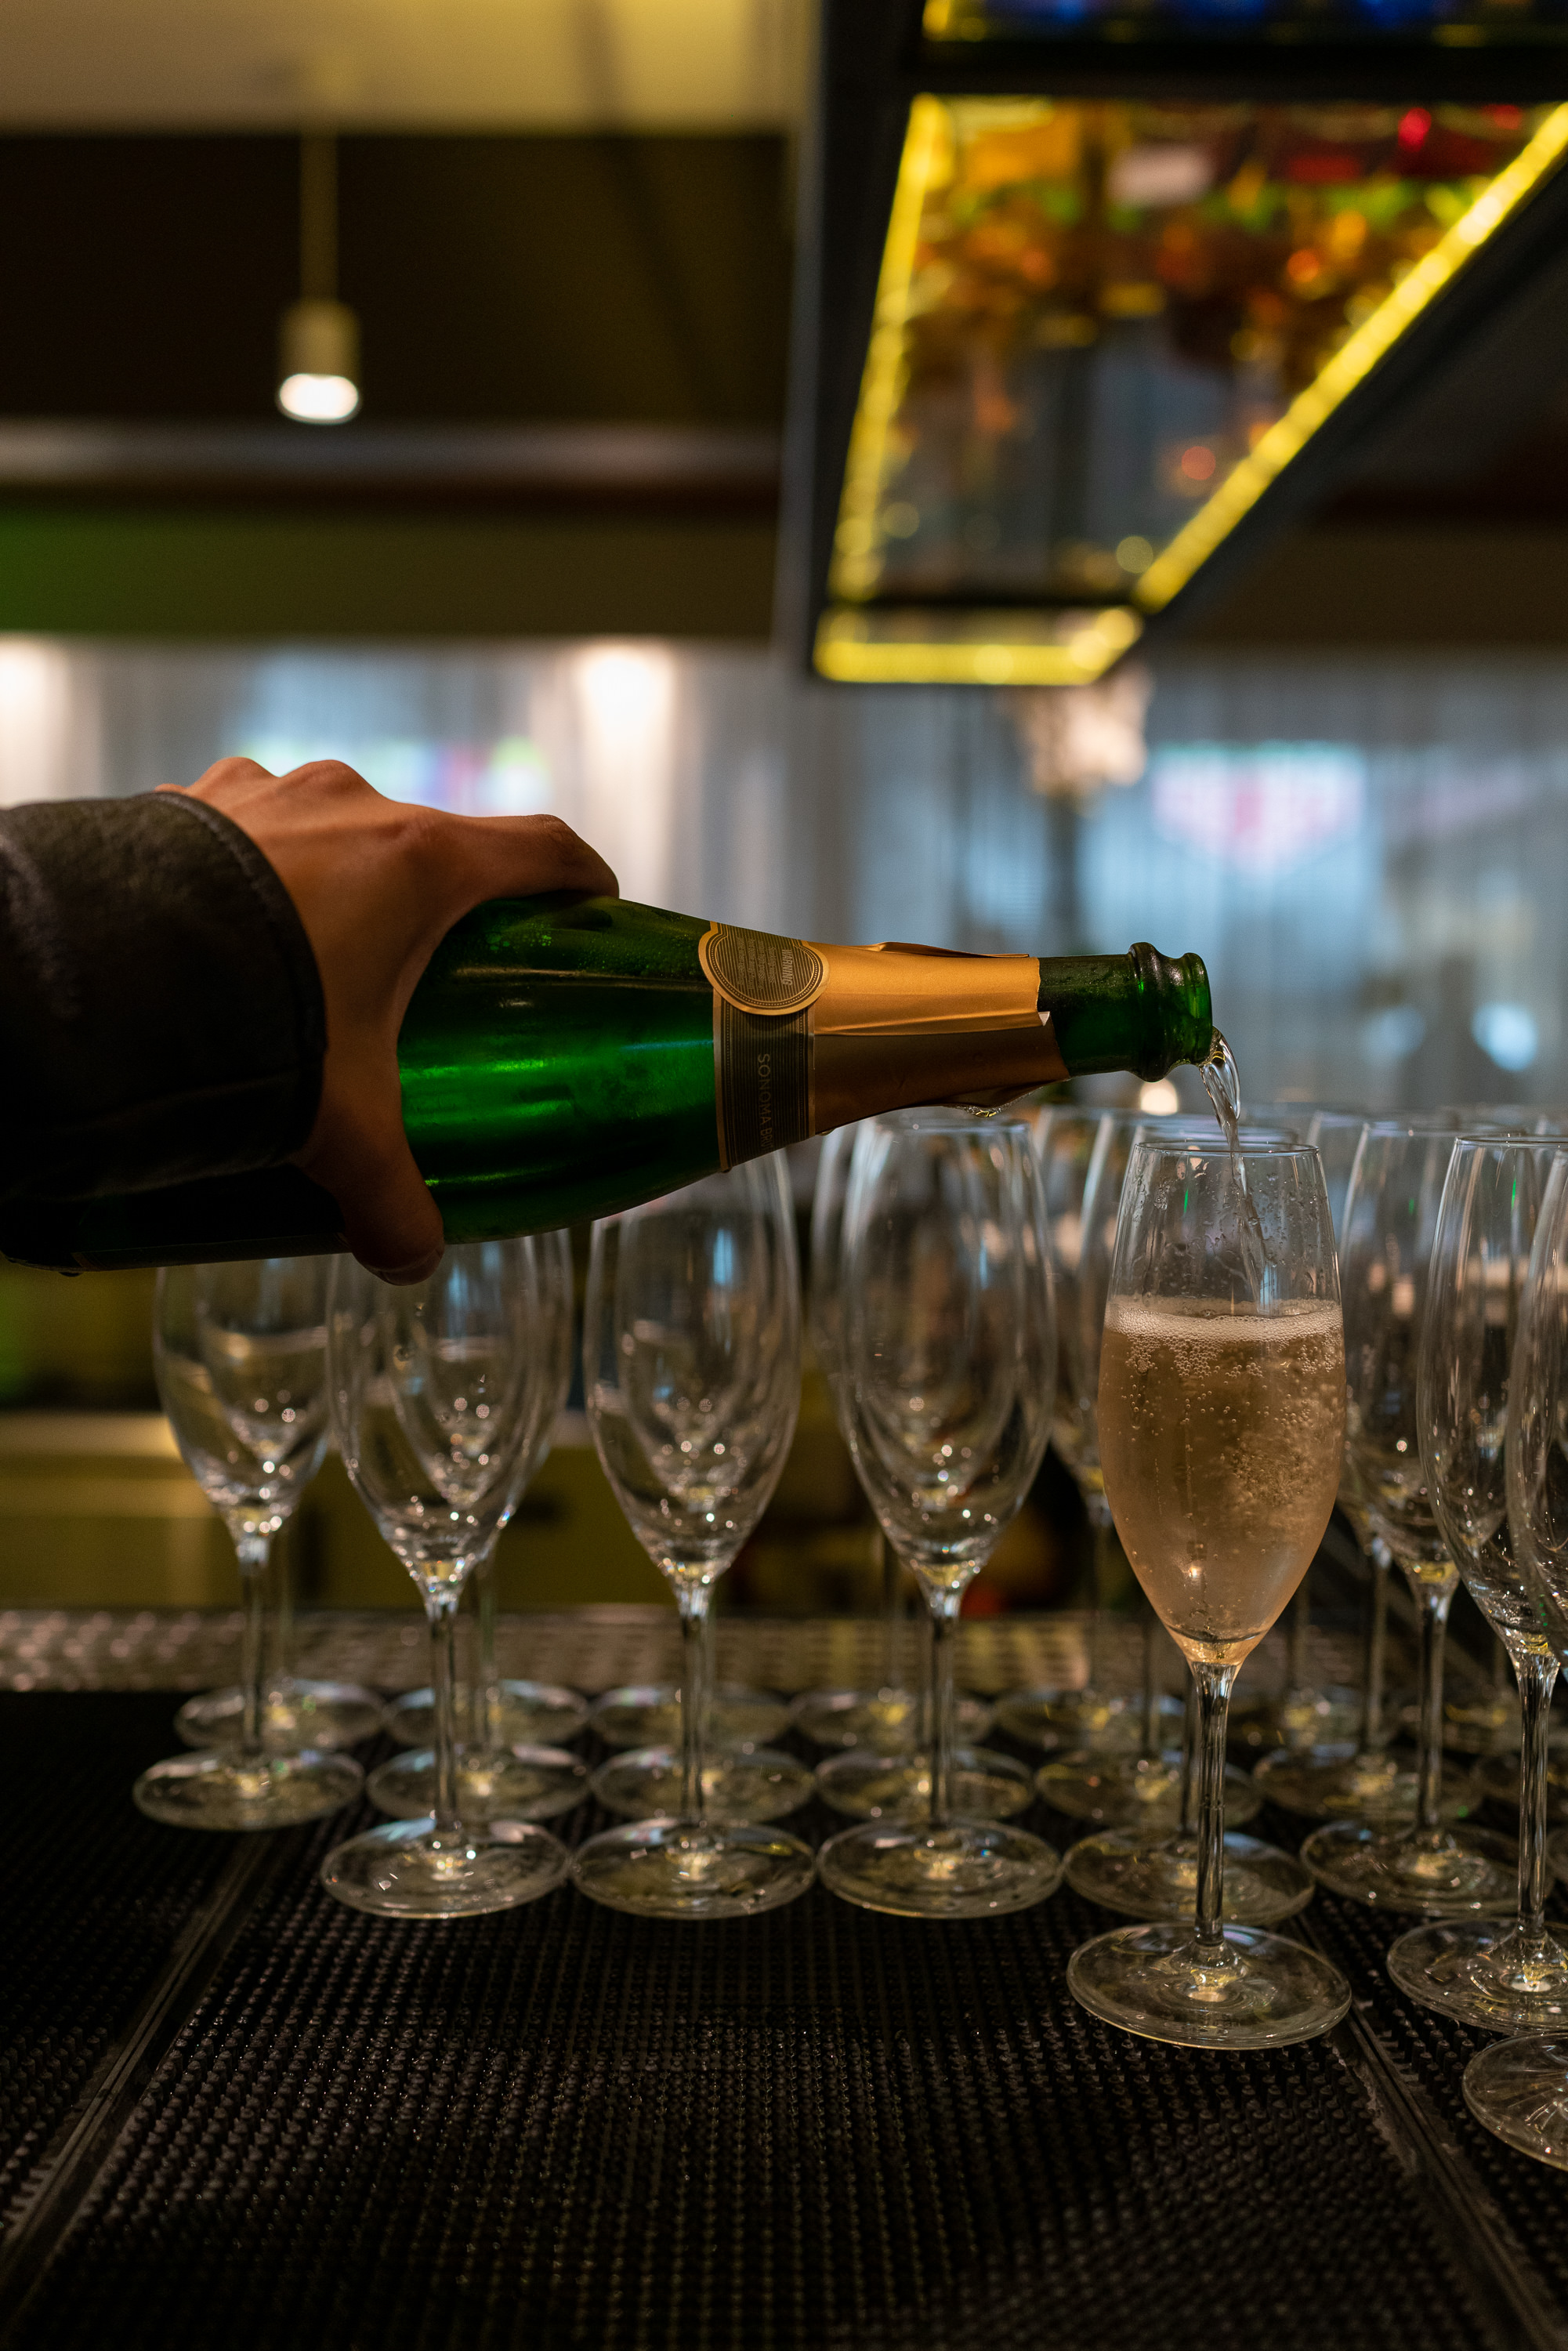 Pre-flight champagne is a must-have on the itinerary before one departs for Helsinki. Take advantage of Finnair's partnership with OneWorld and enjoy some fantastic amenities, from hot plates to a relaxing shower, before boarding.